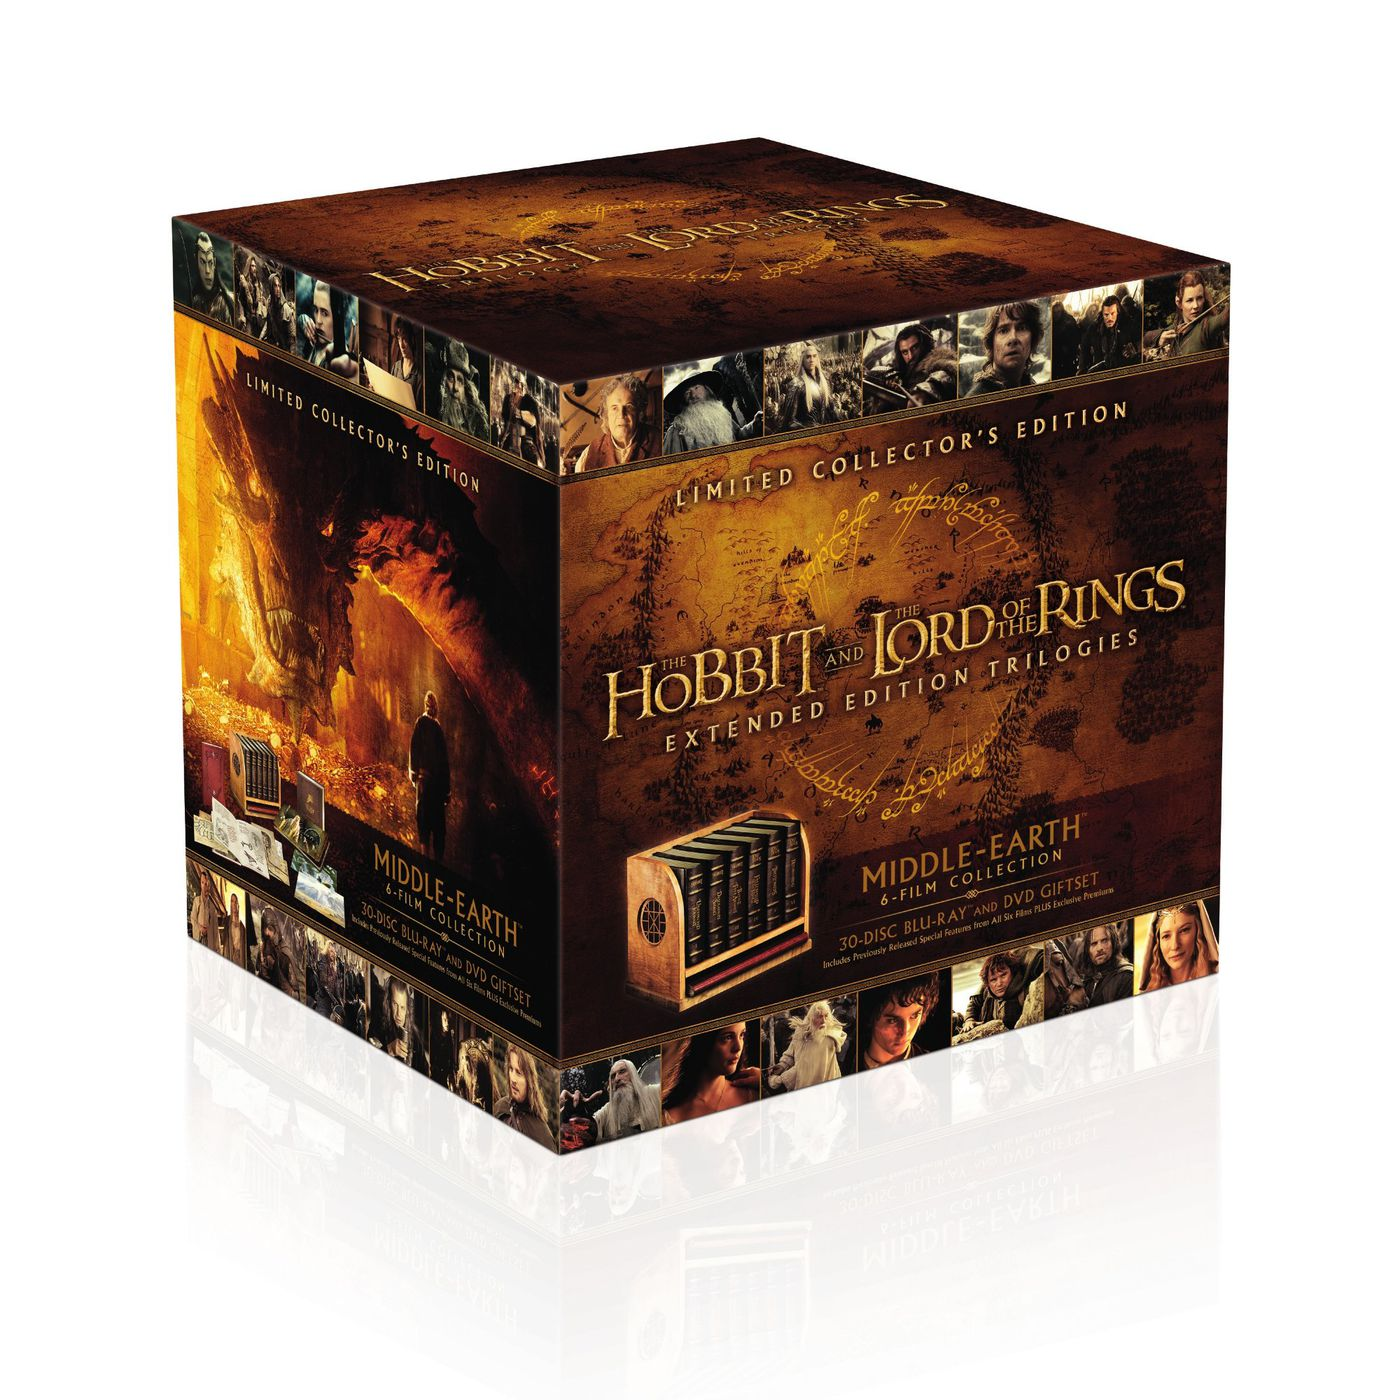 Who is this $800 Lord of the Rings and The Hobbit boxset meant for